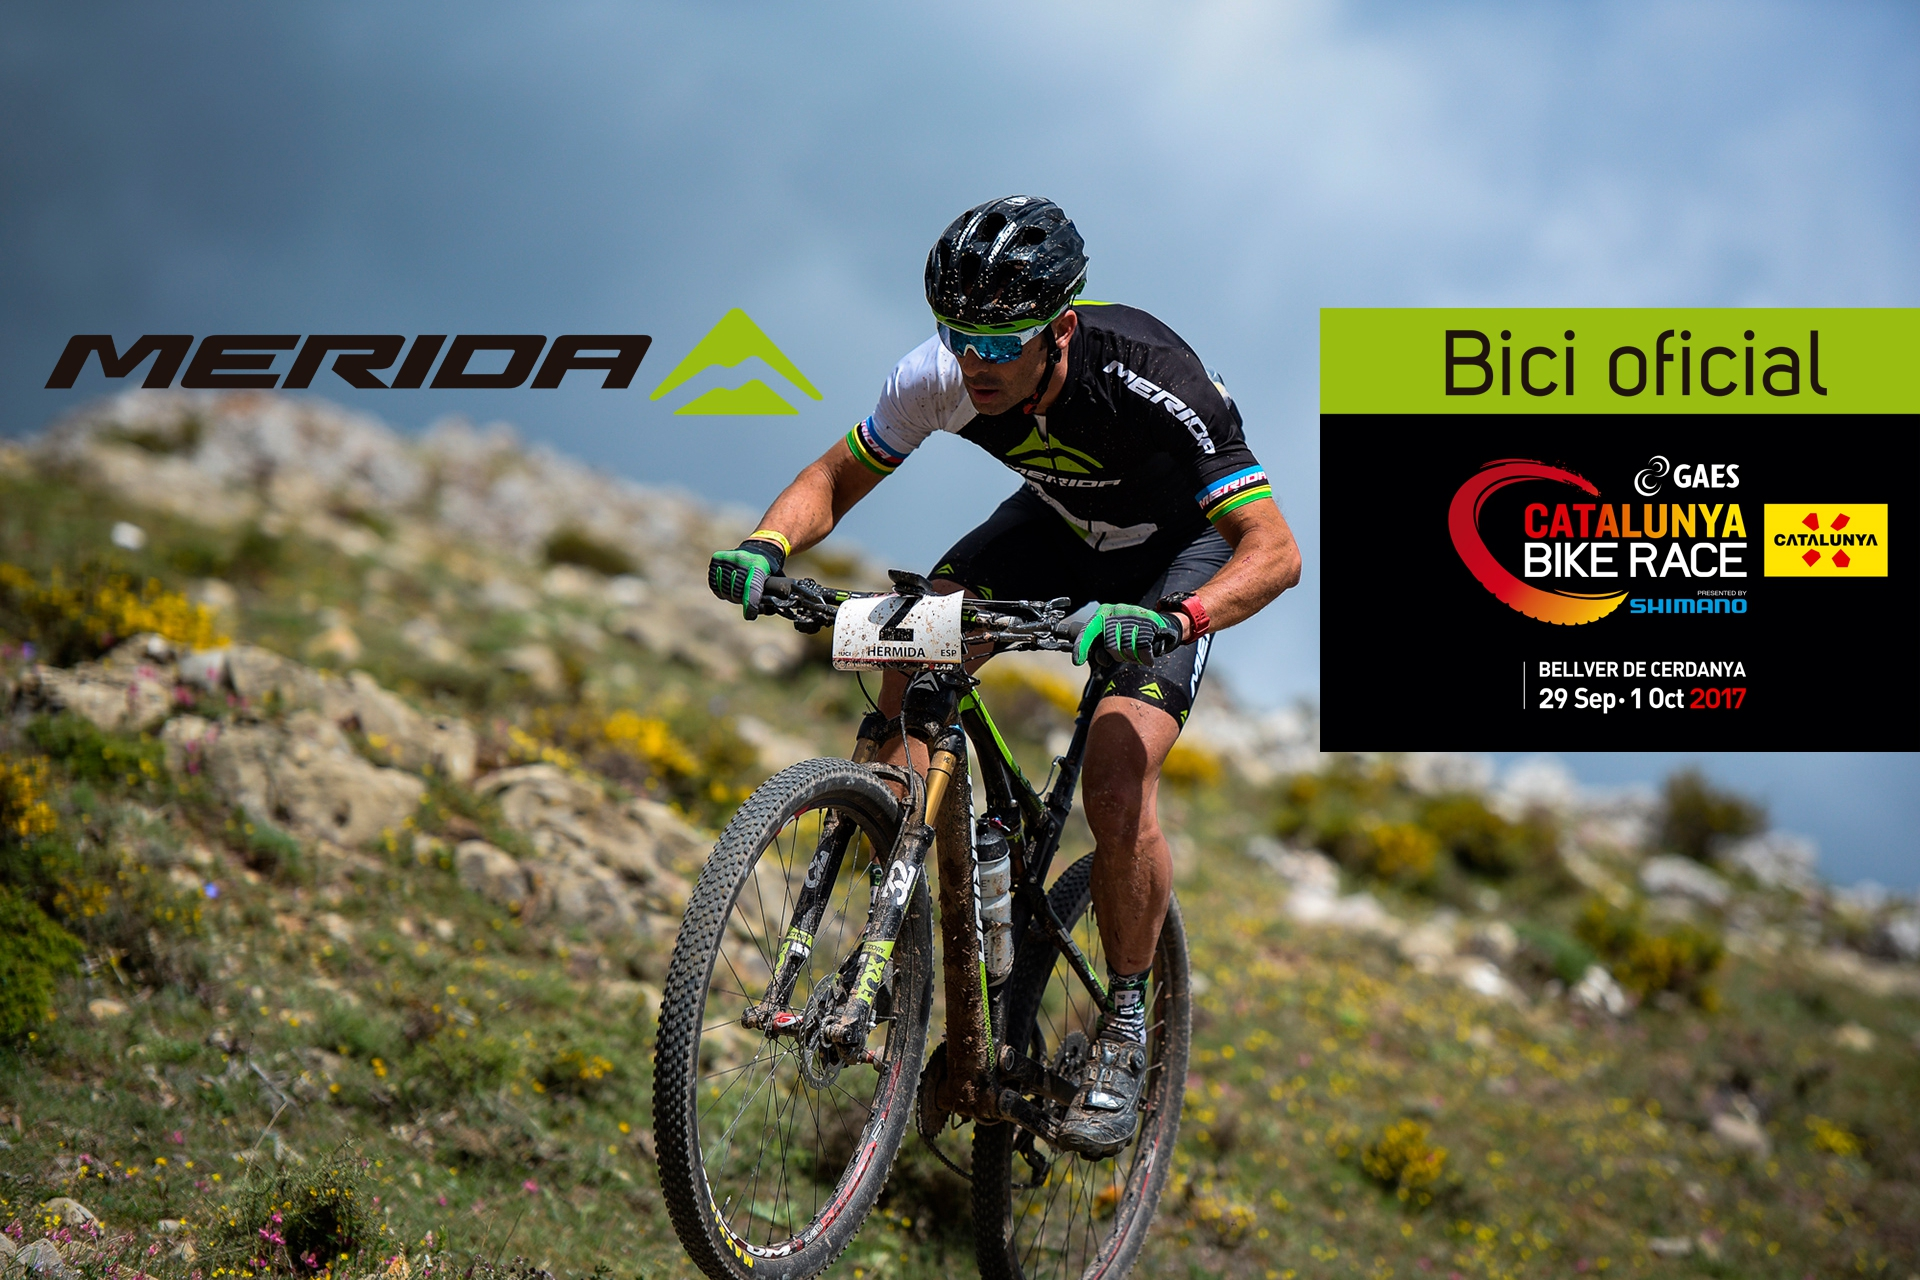 Merida Bikes, bicicleta oficial de GAES Catalunya Bike Race presented by Shimano